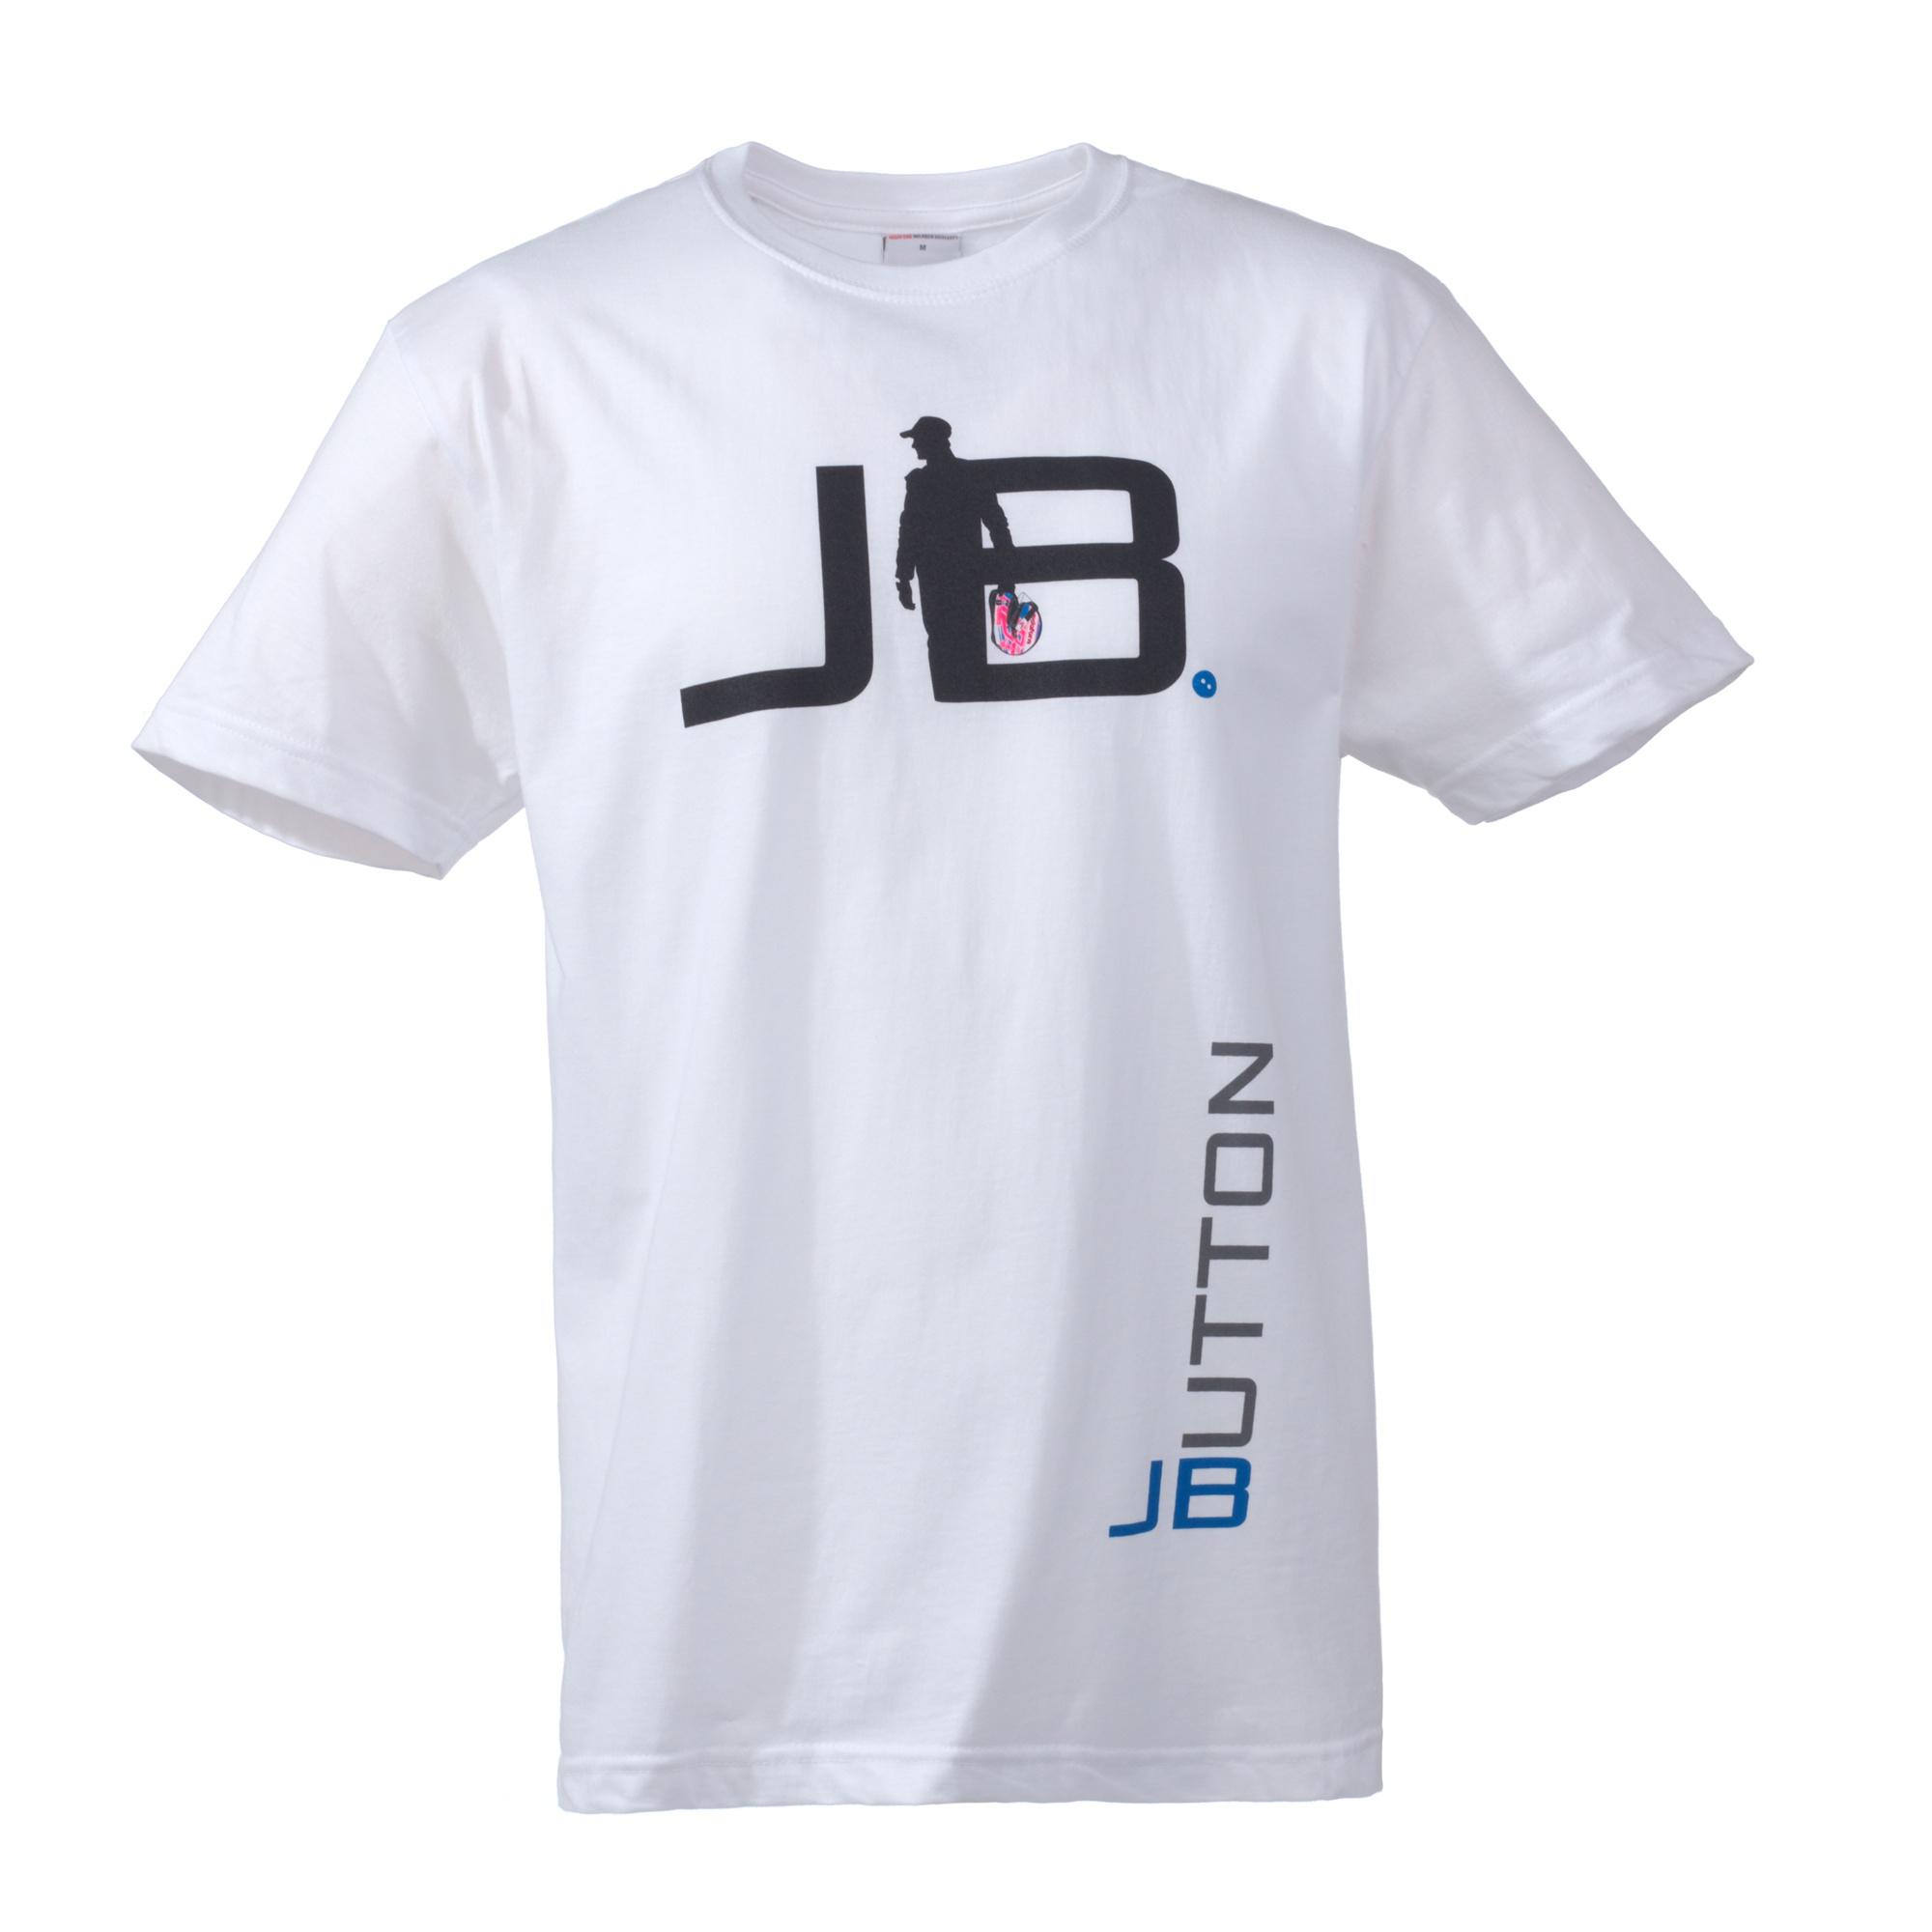 Vodafone McLaren Mercedes Jenson Silhouette T-Shirt